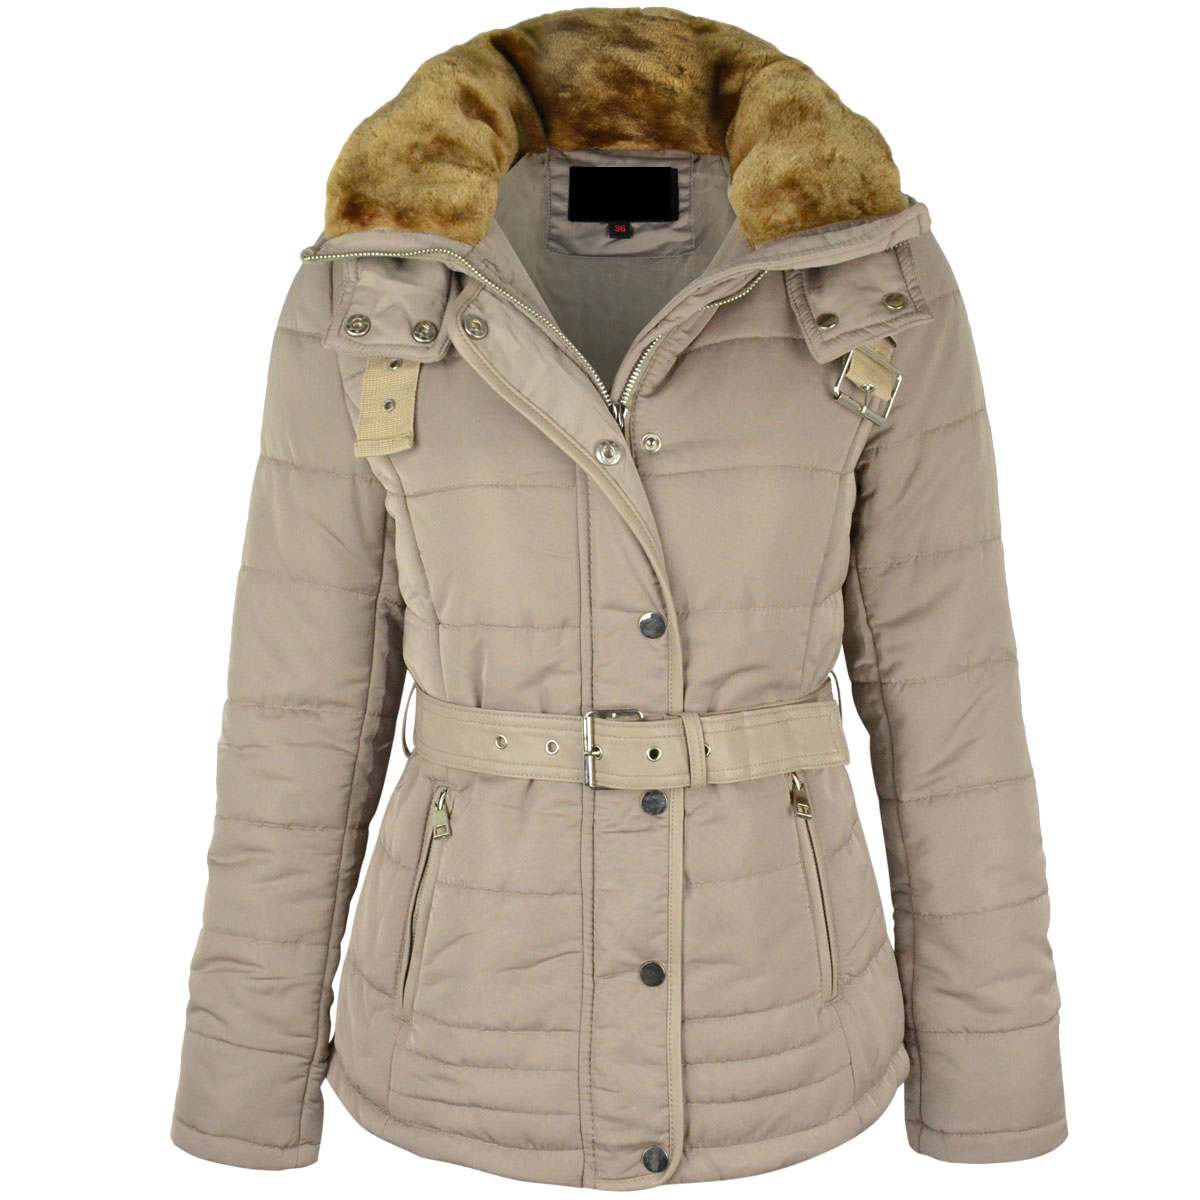 425842ac6d41 NEW WOMENS LADIES WINTER COAT PUFFER FUR COLLAR HOOD JACKET PARKA ...